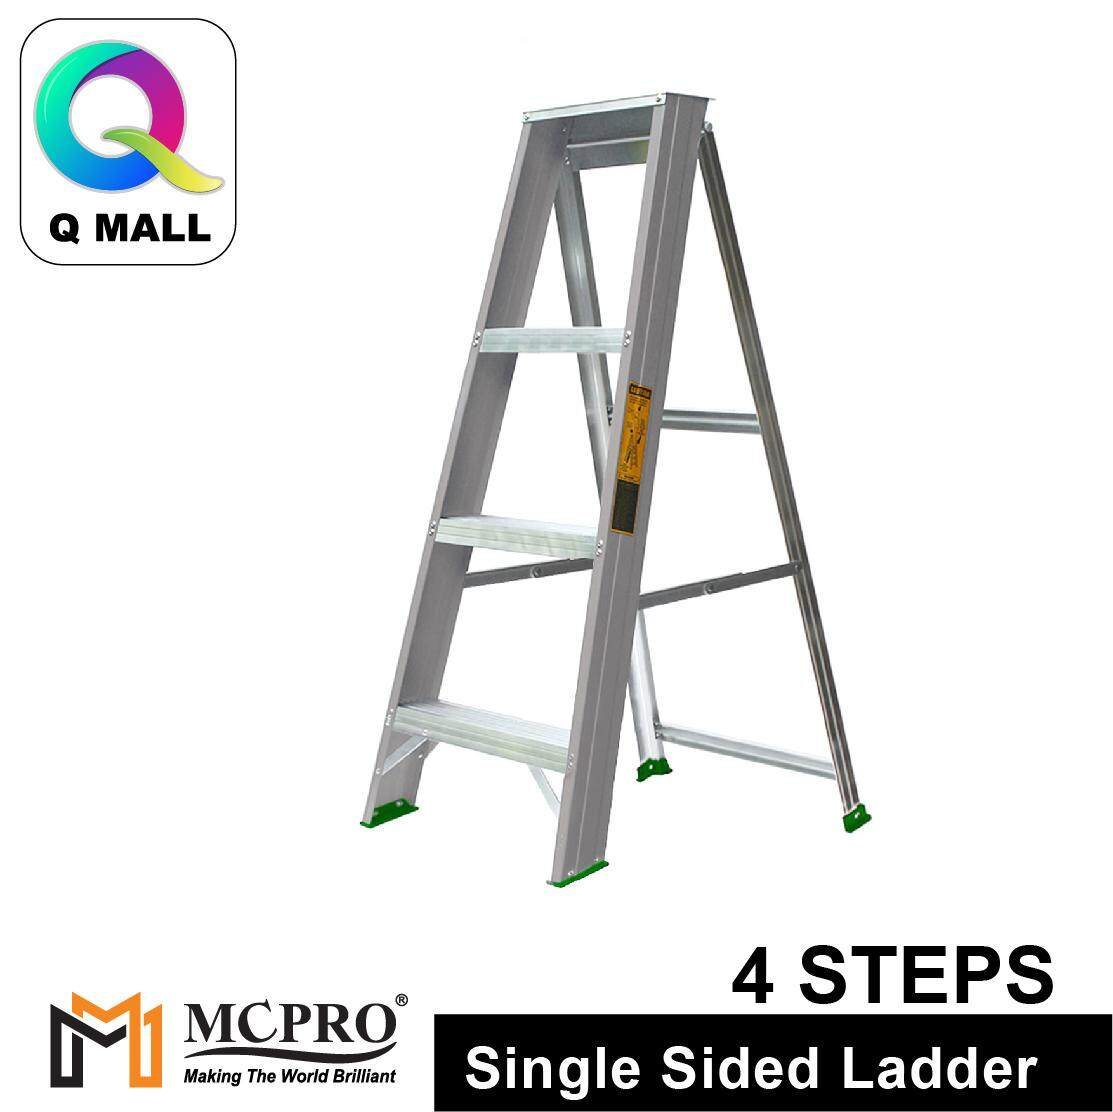 MCPRO Aluminium Single Sided Ladder 4 Steps 43 [ Max Reachable Height 235.2cm ]